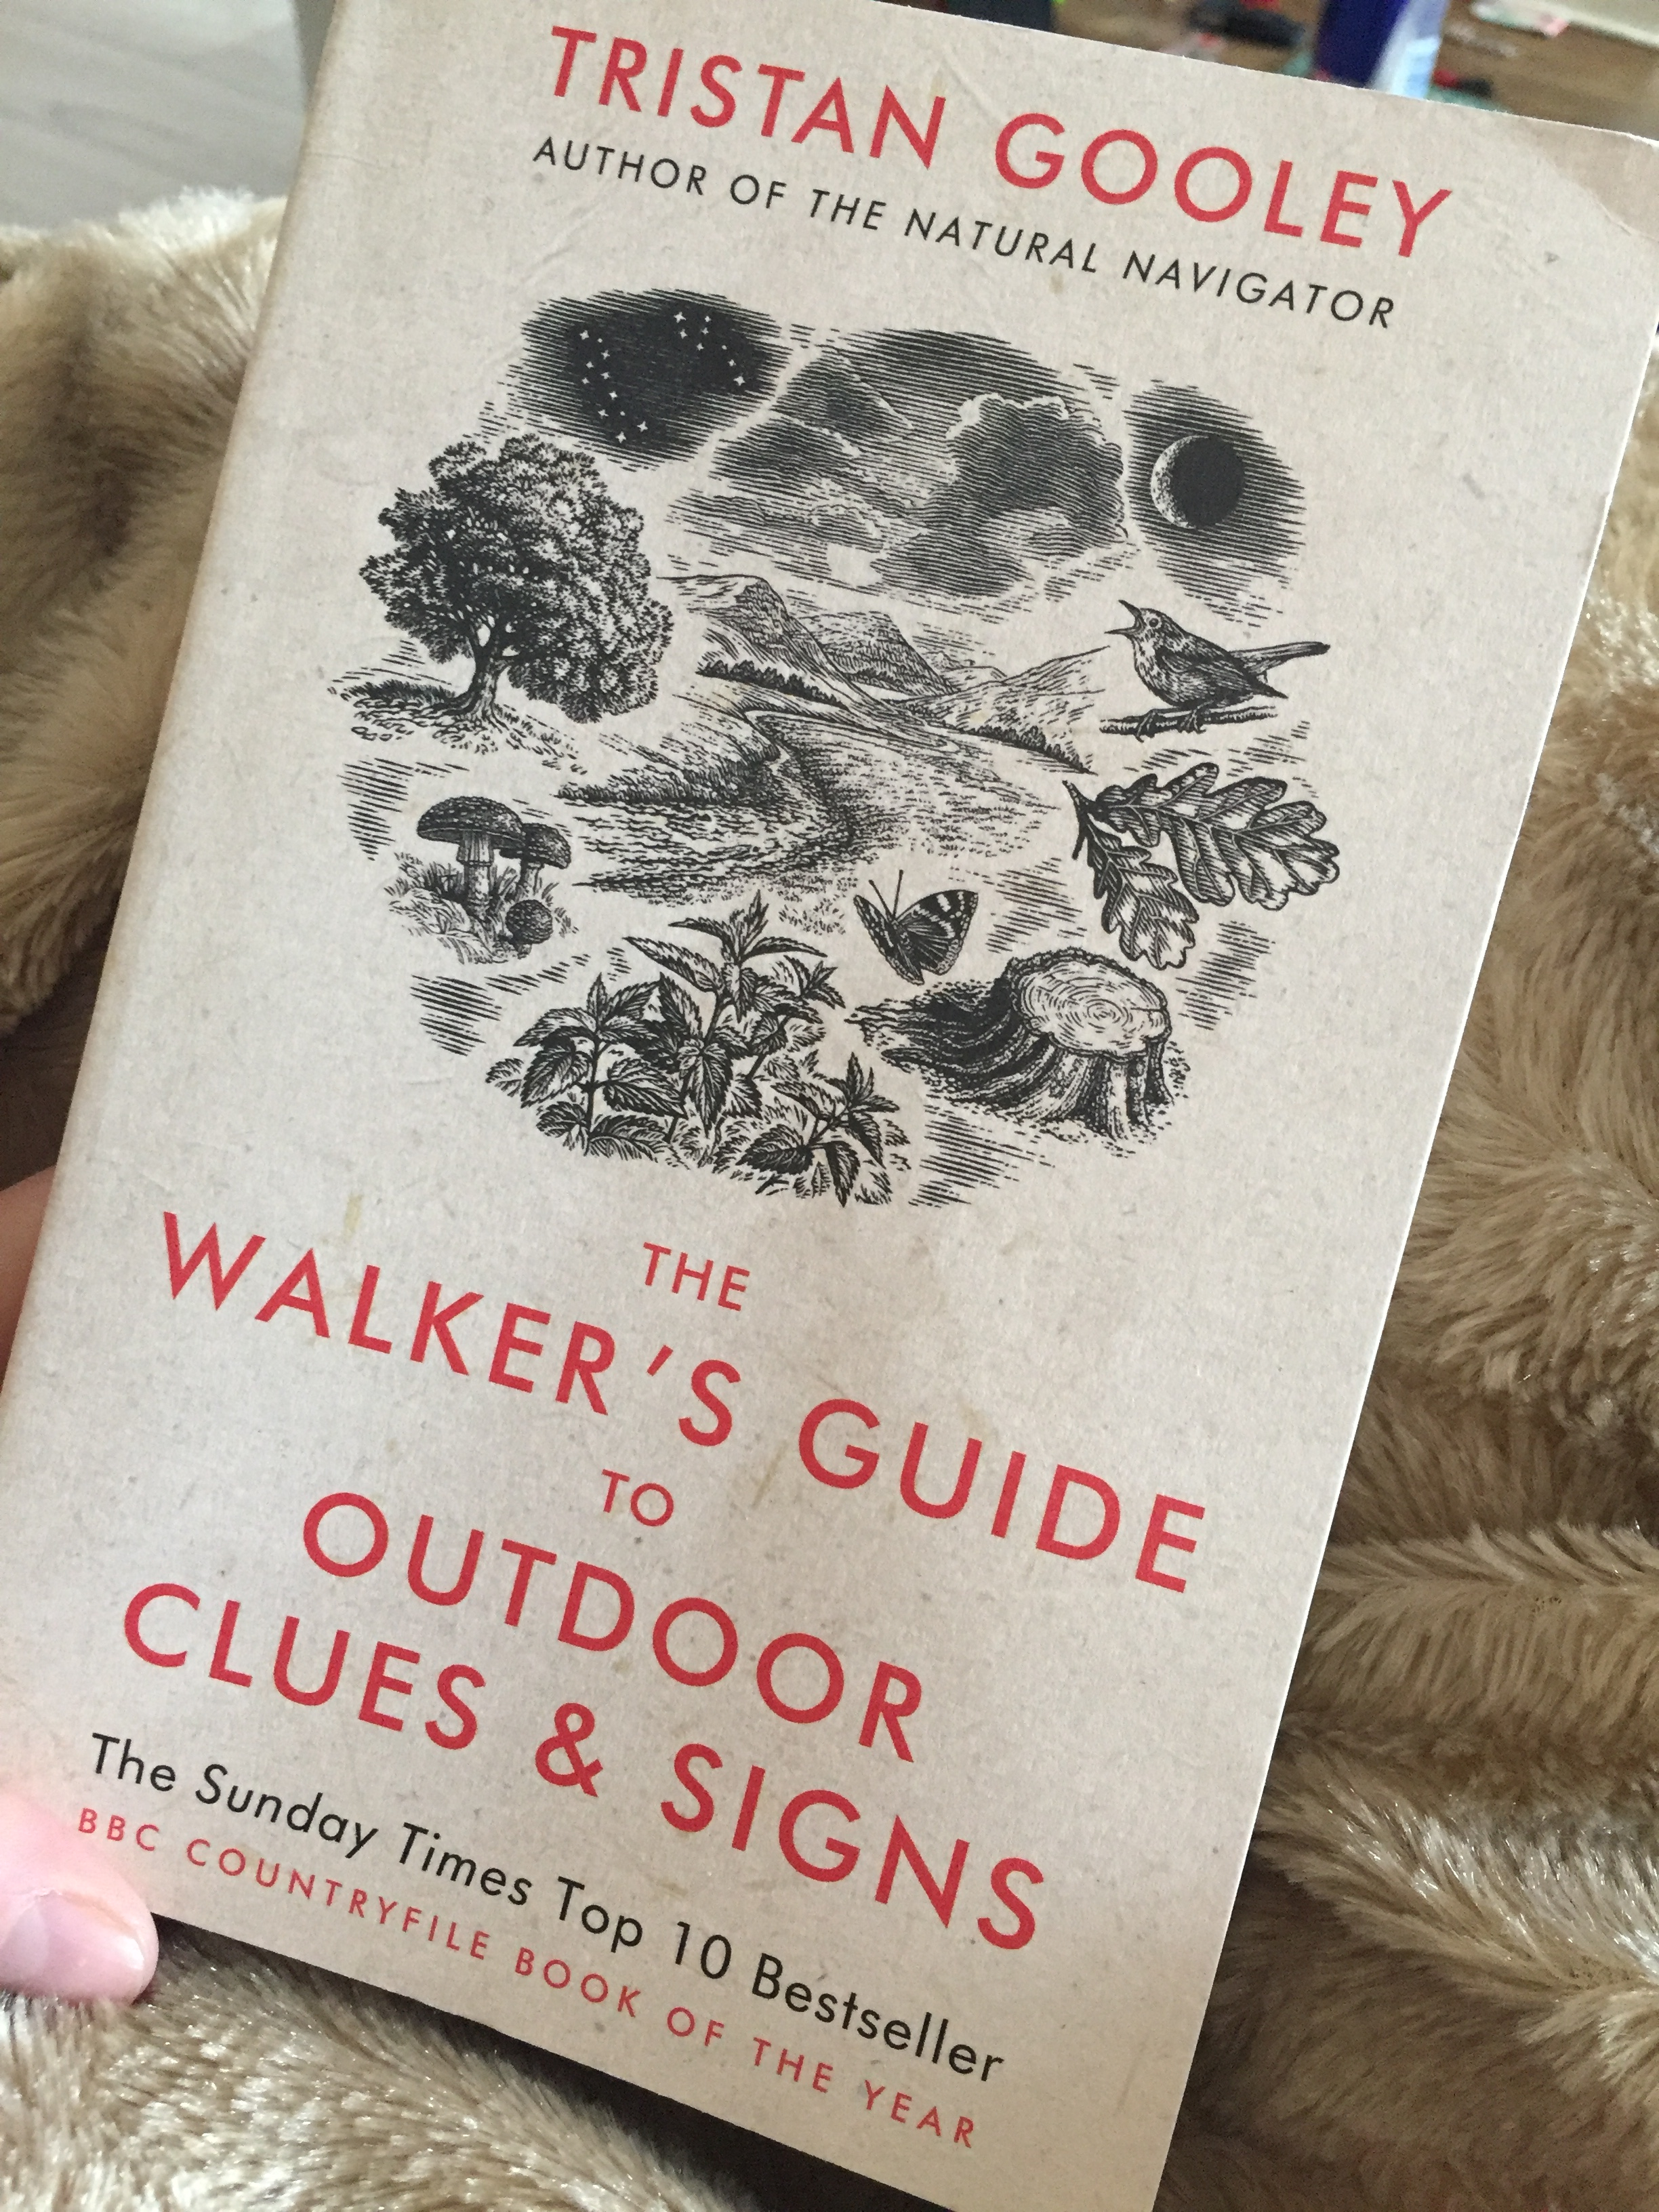 The Walkers Guide to Outdoor Clues and Signs - Tristan Gooley